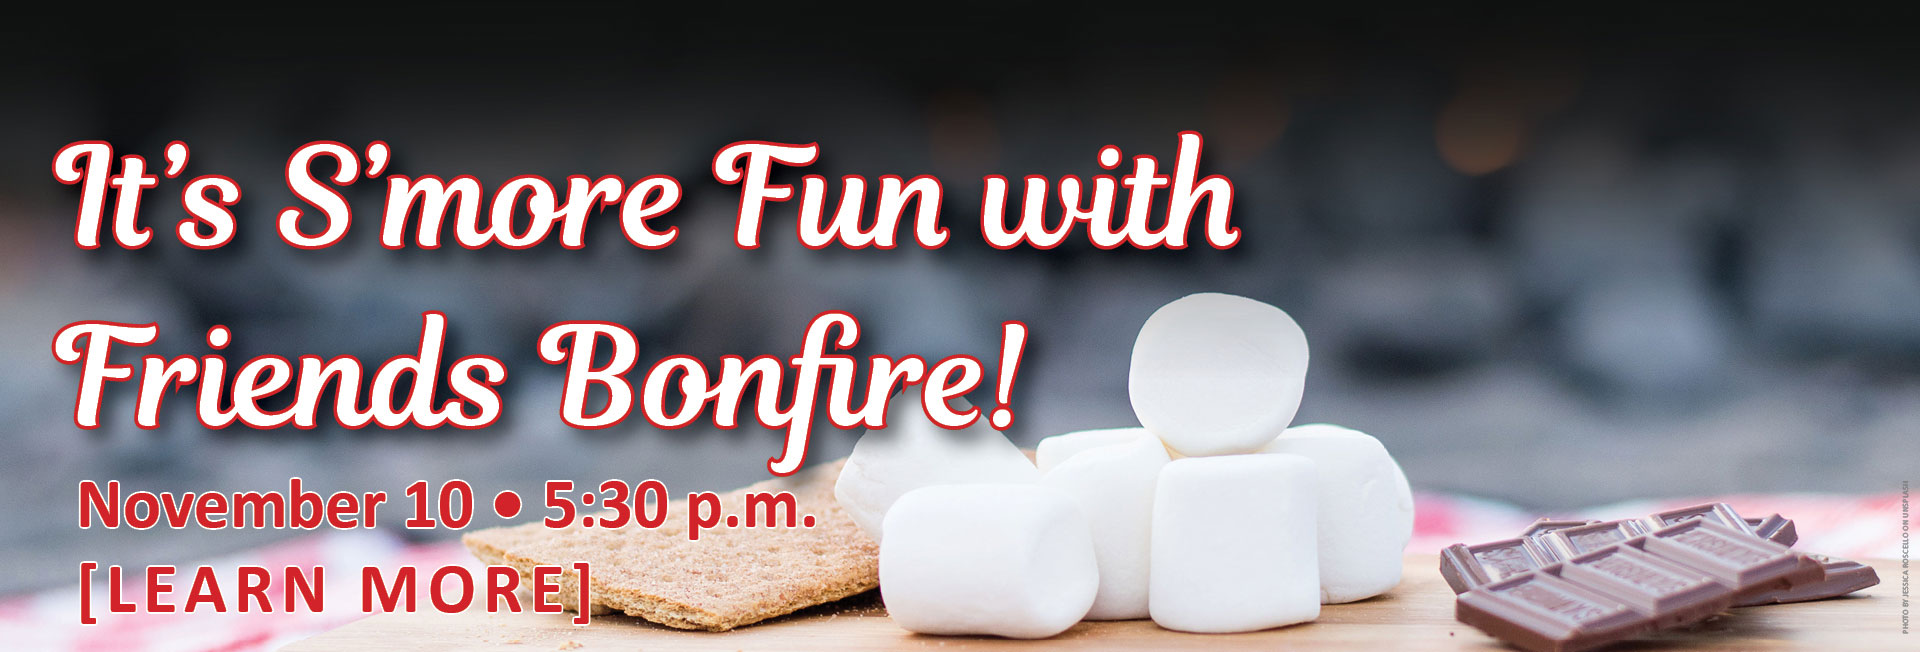 Second Annual S'more fun with a Bonfire - November 10 at the Calhoun SDA Church 5:30 P.M